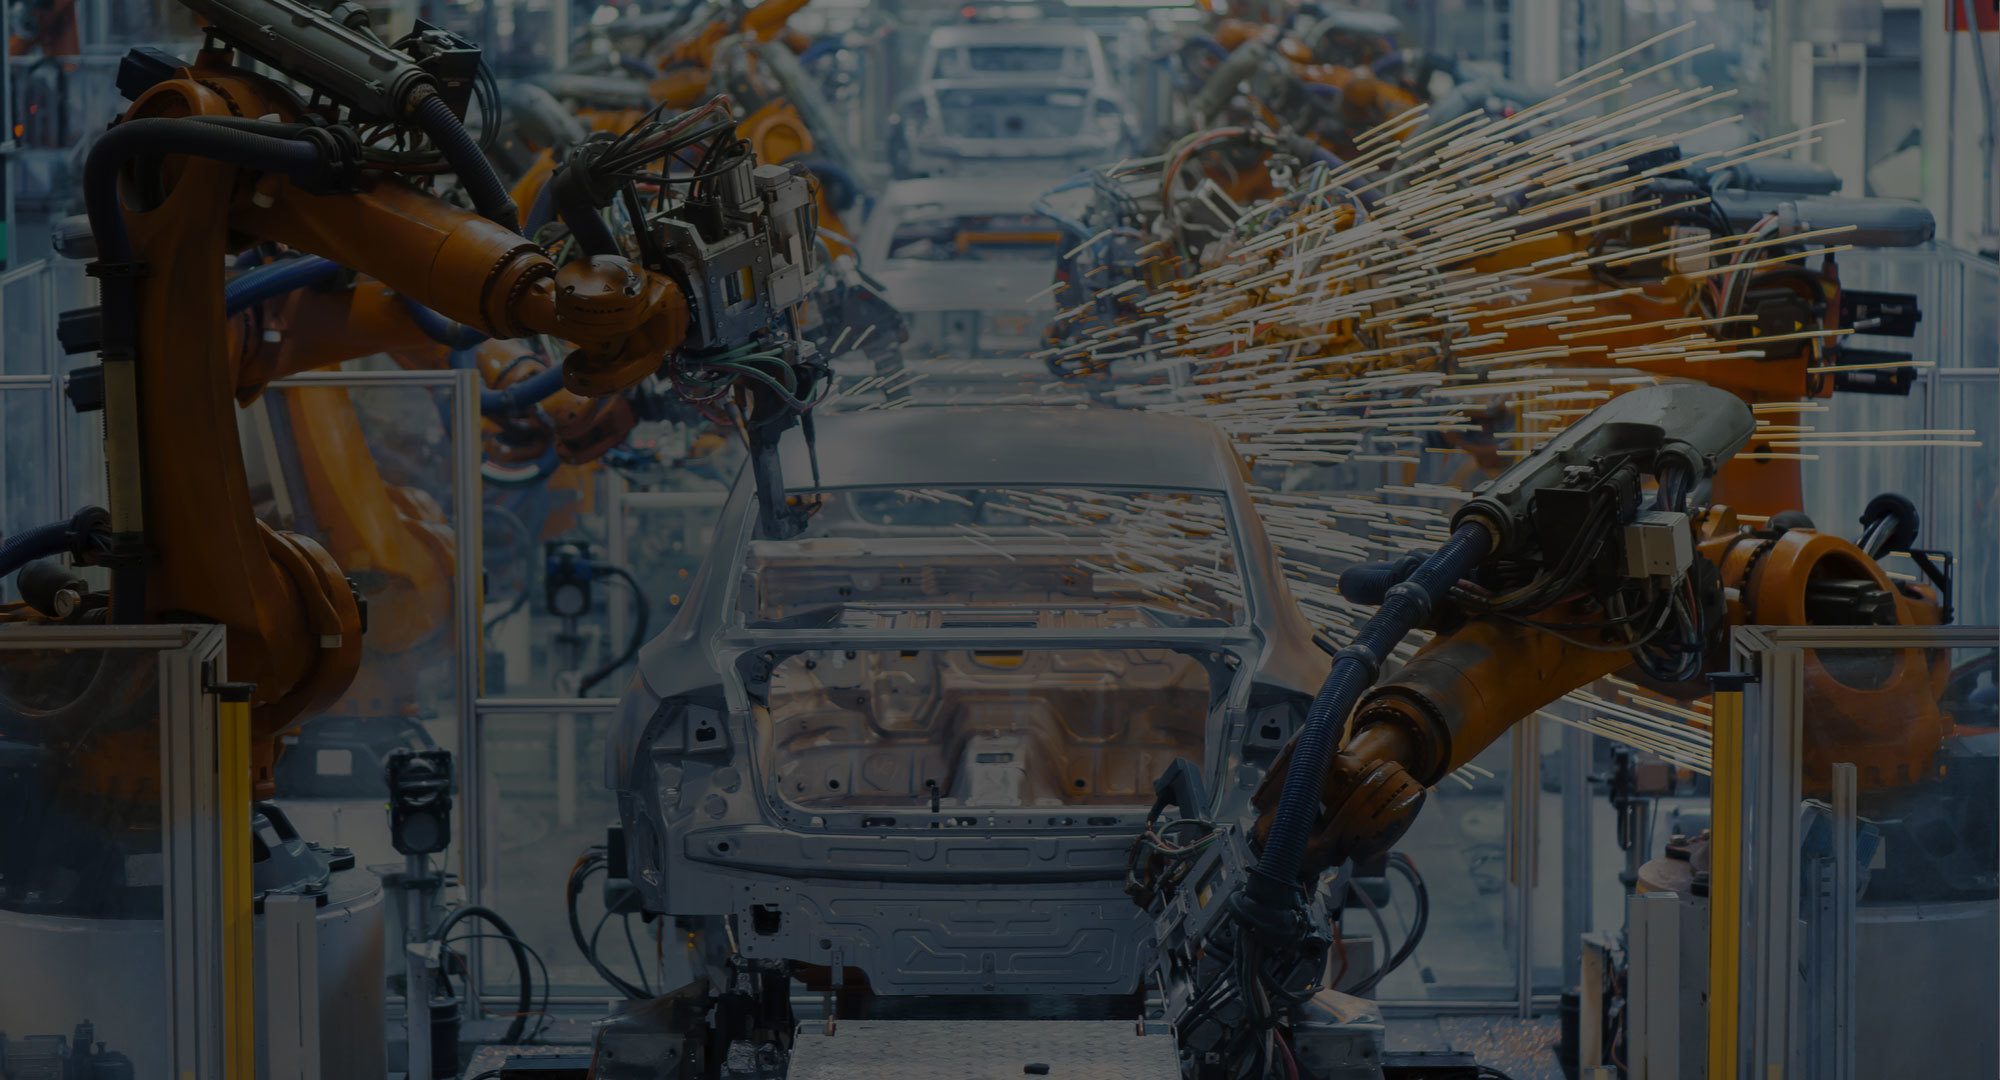 automotive-factory-robotics